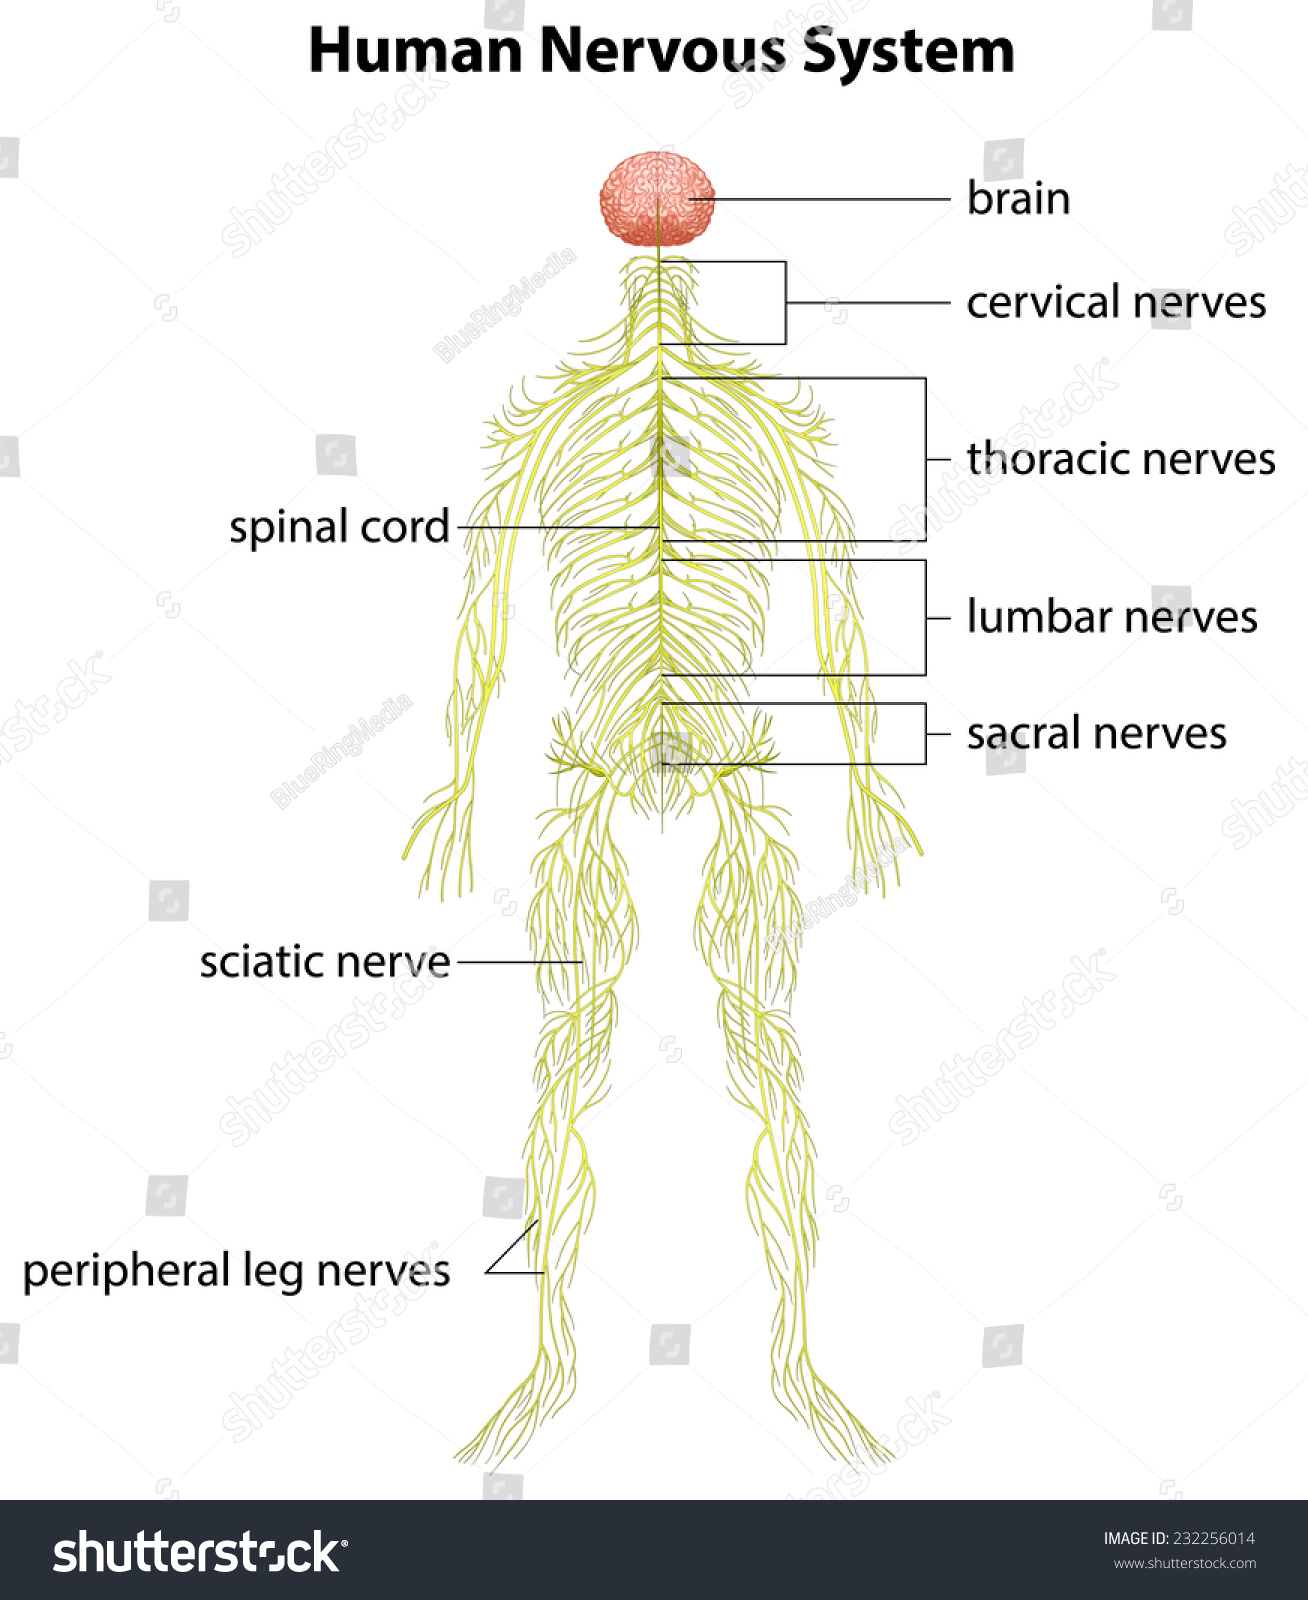 central nervous system labeled diagram sub wiring configuration image showing human stock vector 232256014